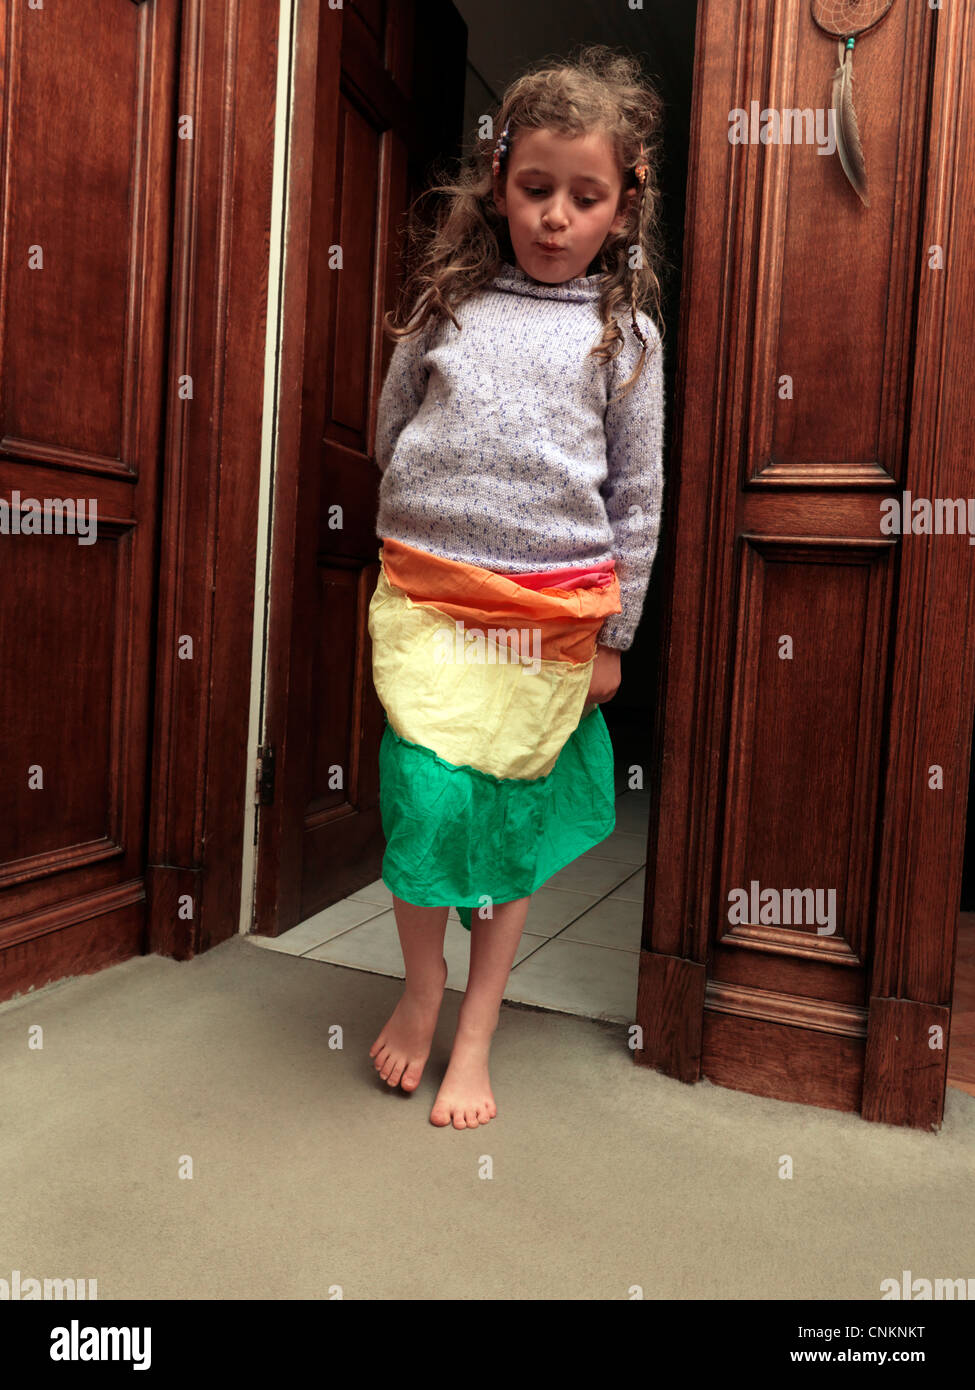 Young Girl Tip Toeing Through Doorway England - Stock Image